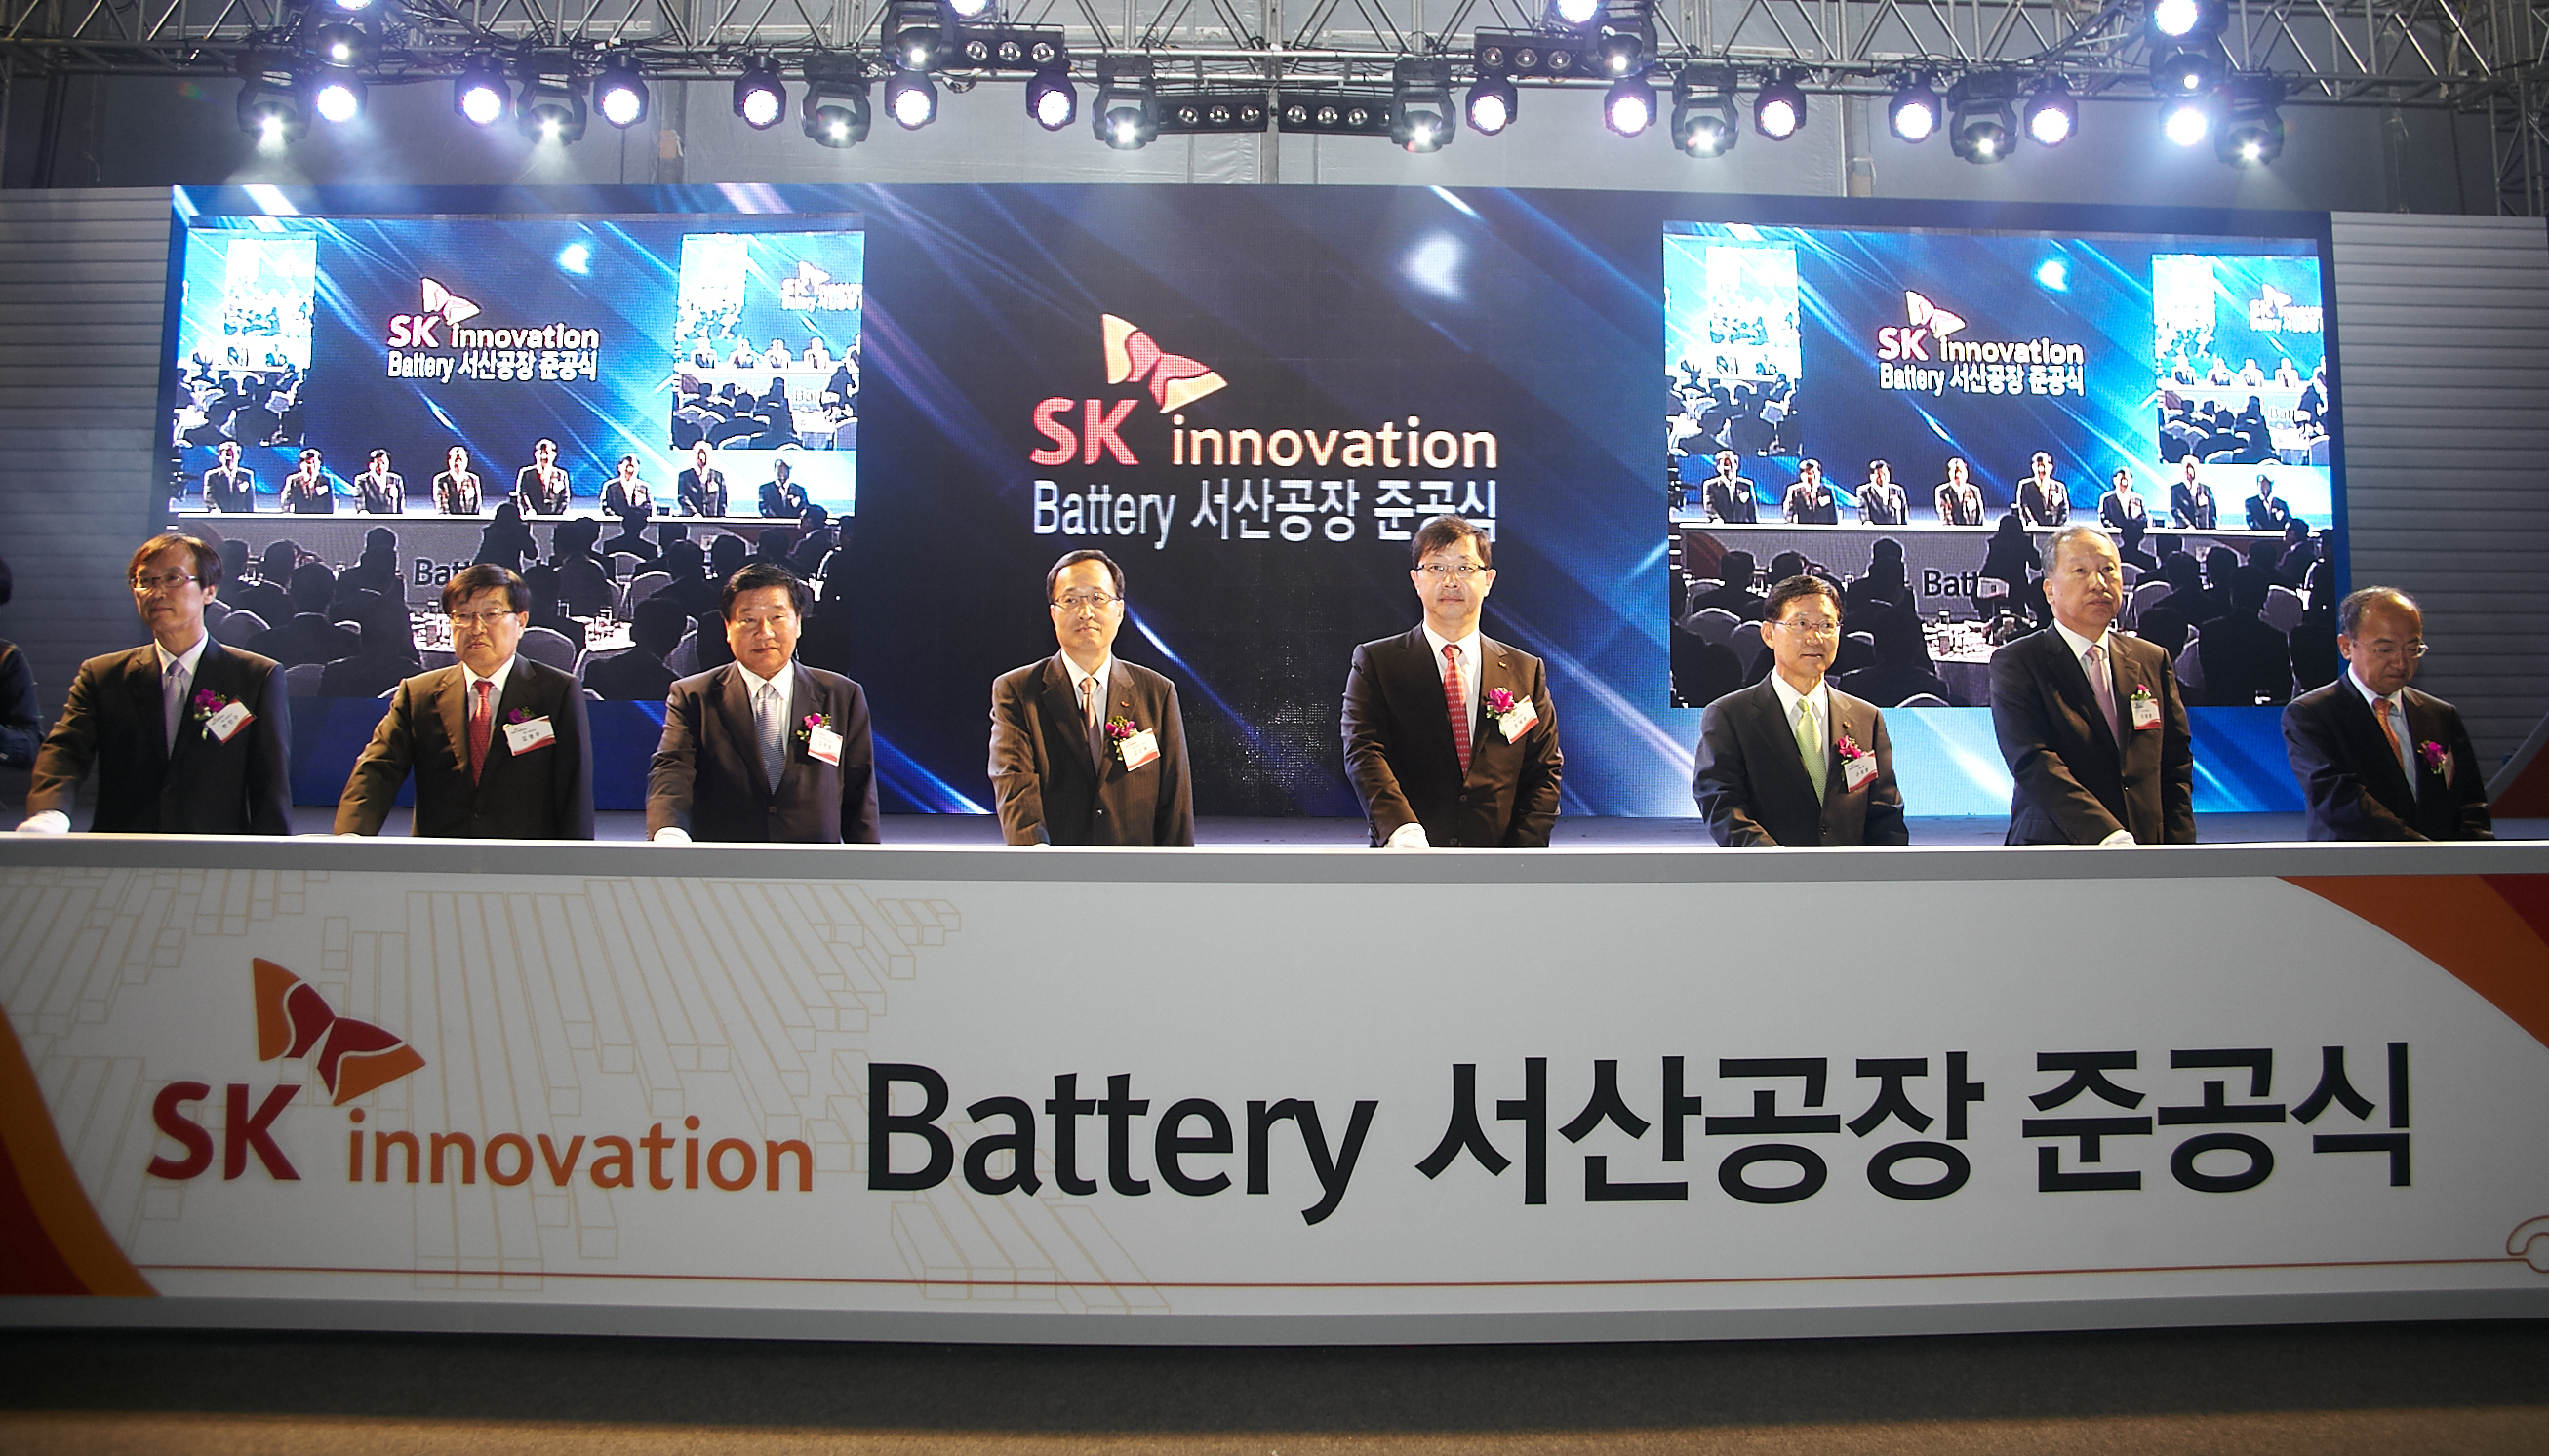 Managements of SK Innovation celebrated the completion of the EV battery cell factory construction in in Seosan complex in South Chungcheong Province on Sep. 18, 2012.